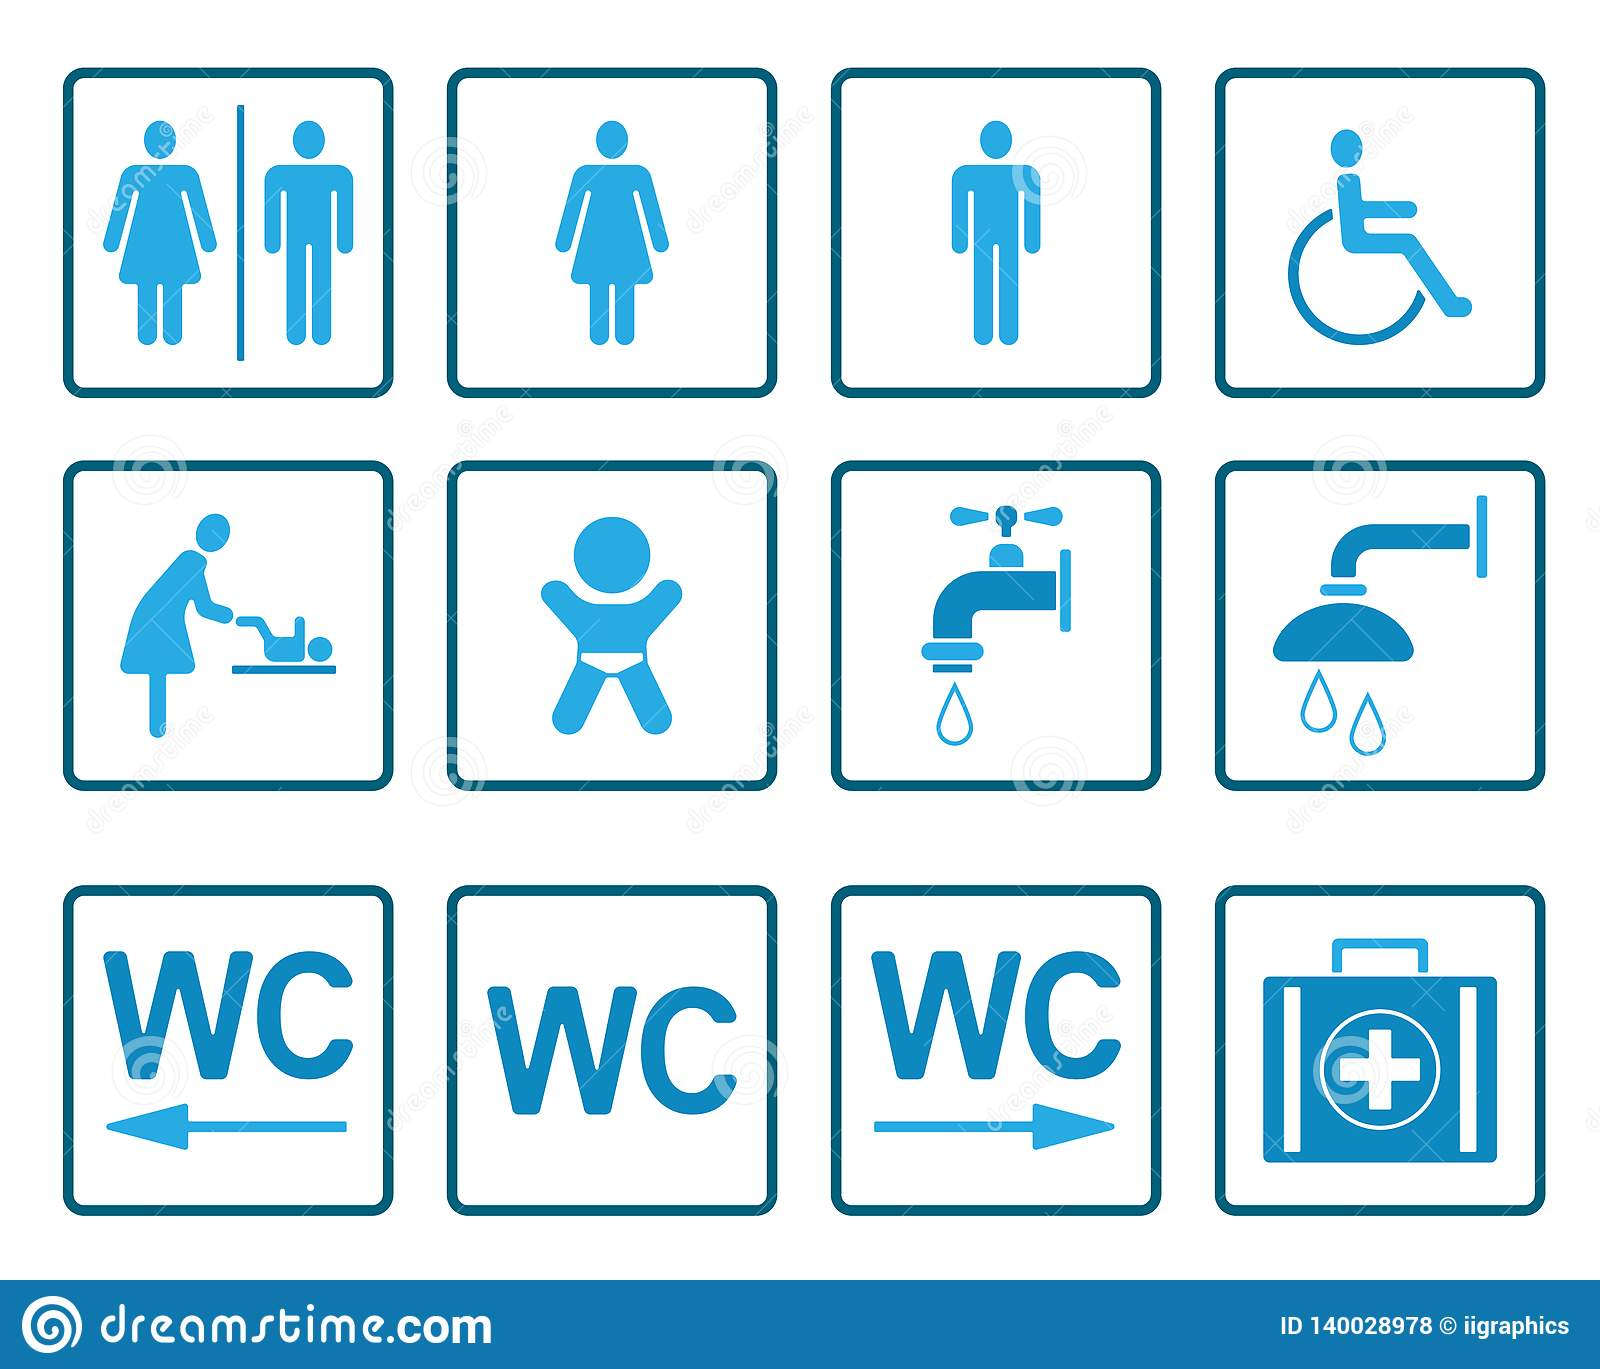 WC & Toilets Pictograms - Iconset